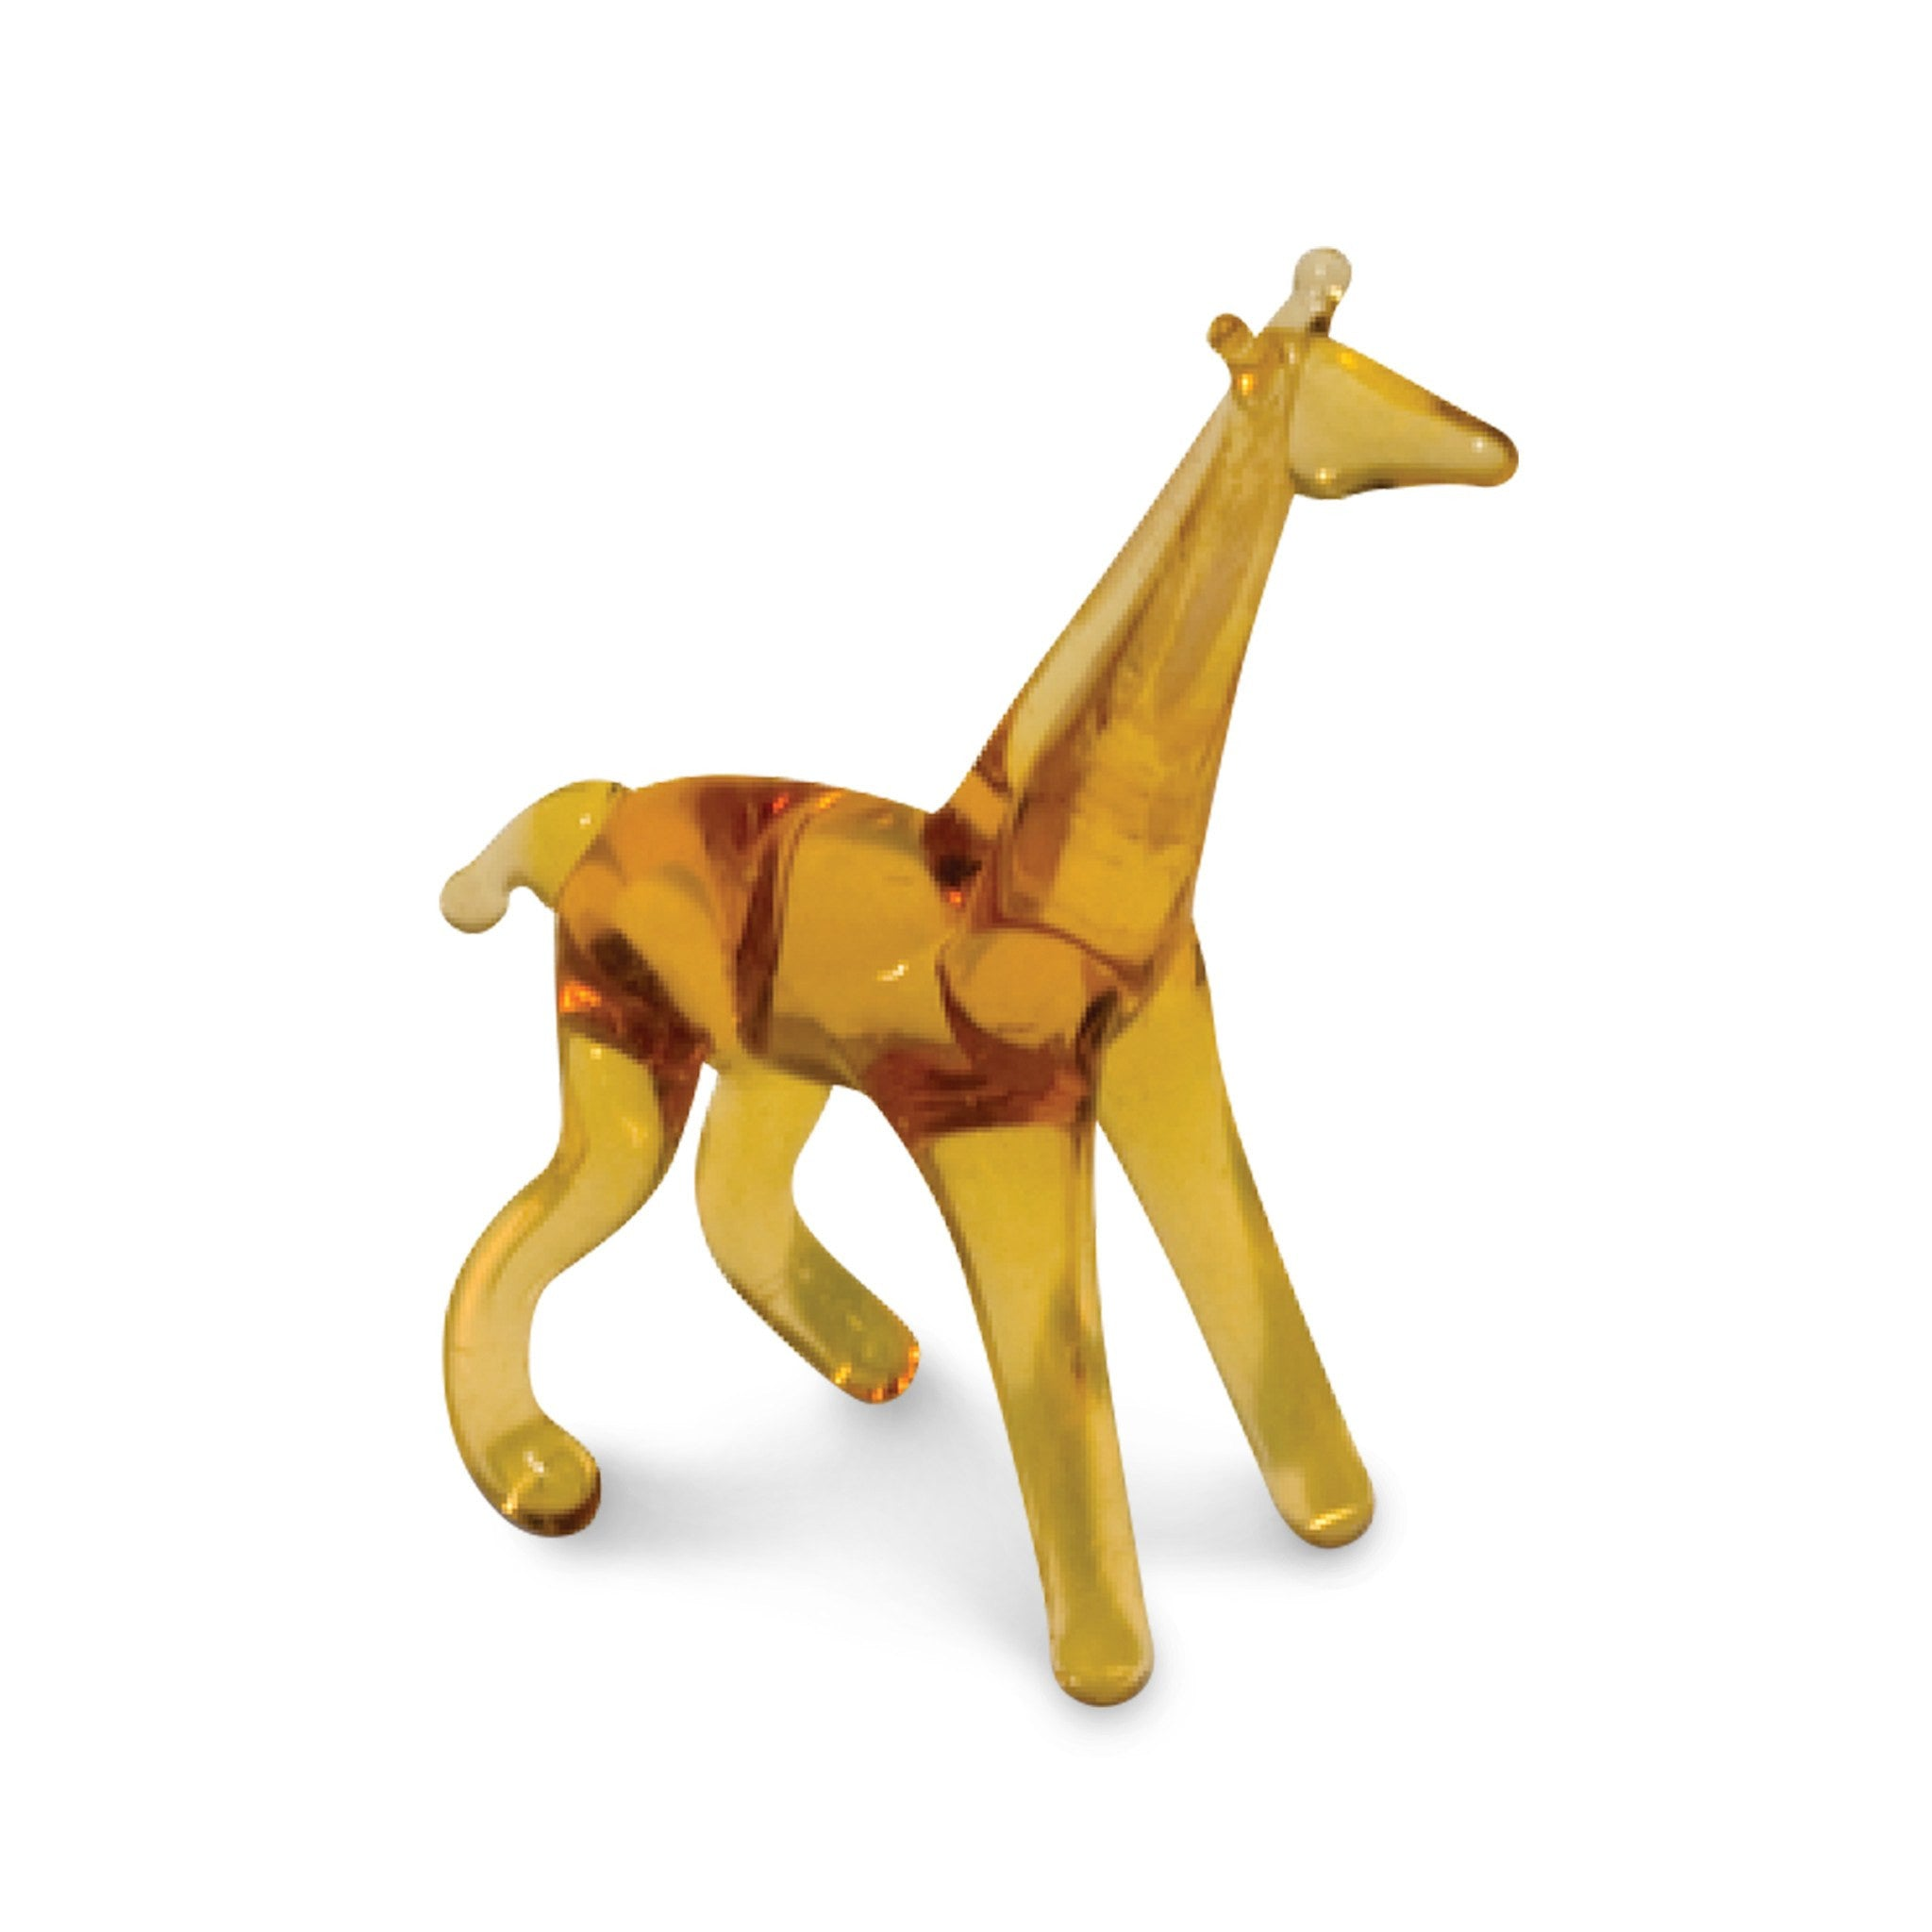 Gee the Giraffe (in Tynies Collector's Frame) Miniature glass figurines